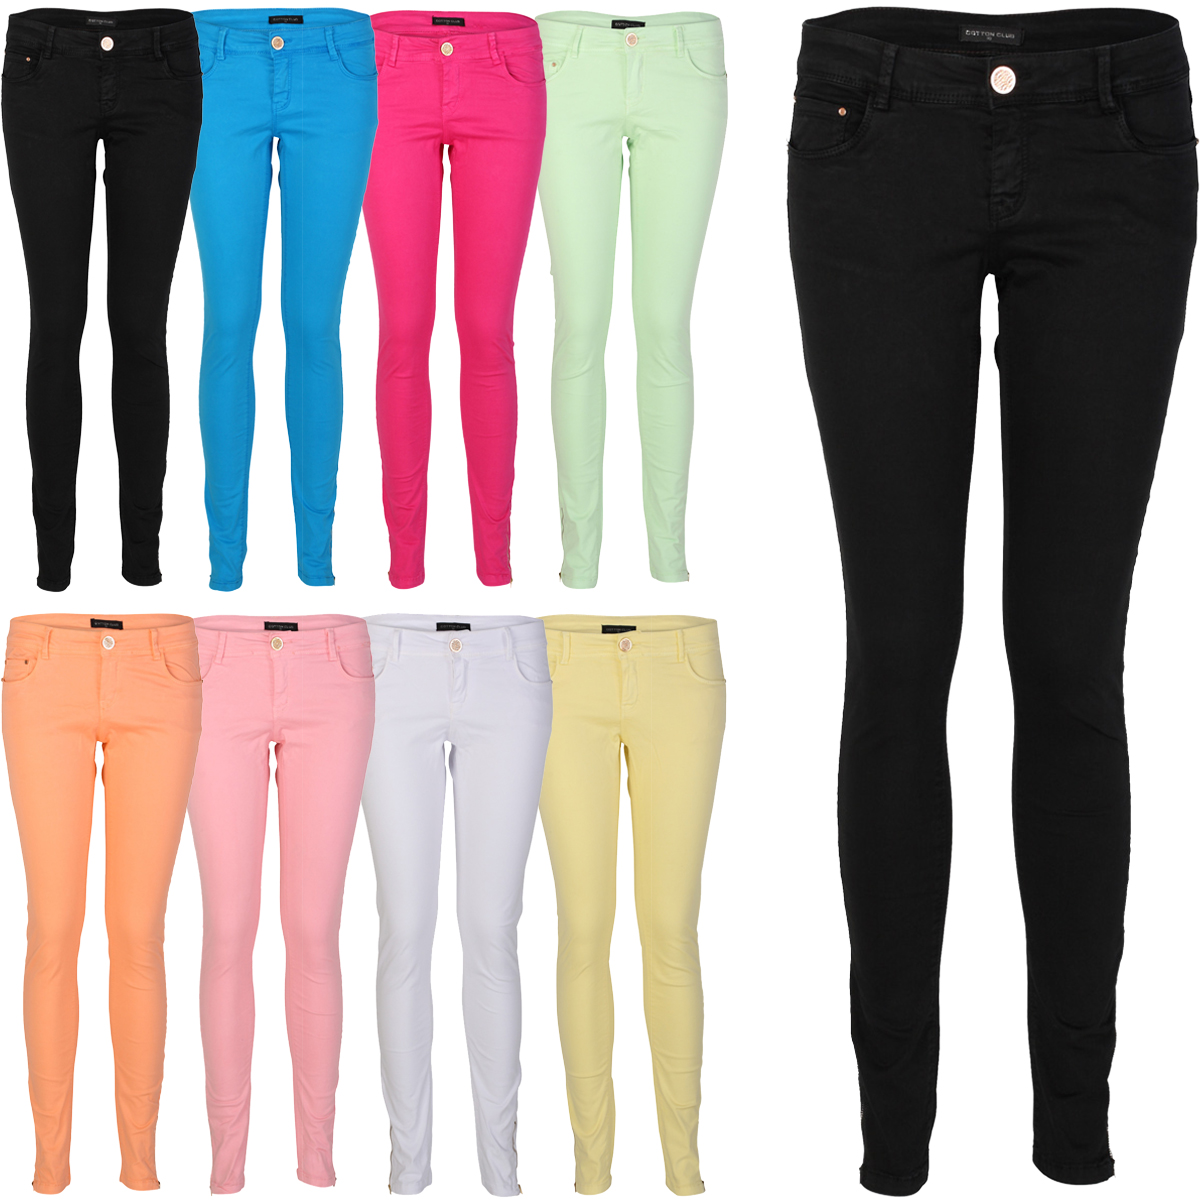 90L WOMENS COLOURED SOFT LADIES ZIP SKINNY LEG JEGGINGS JEANS ...